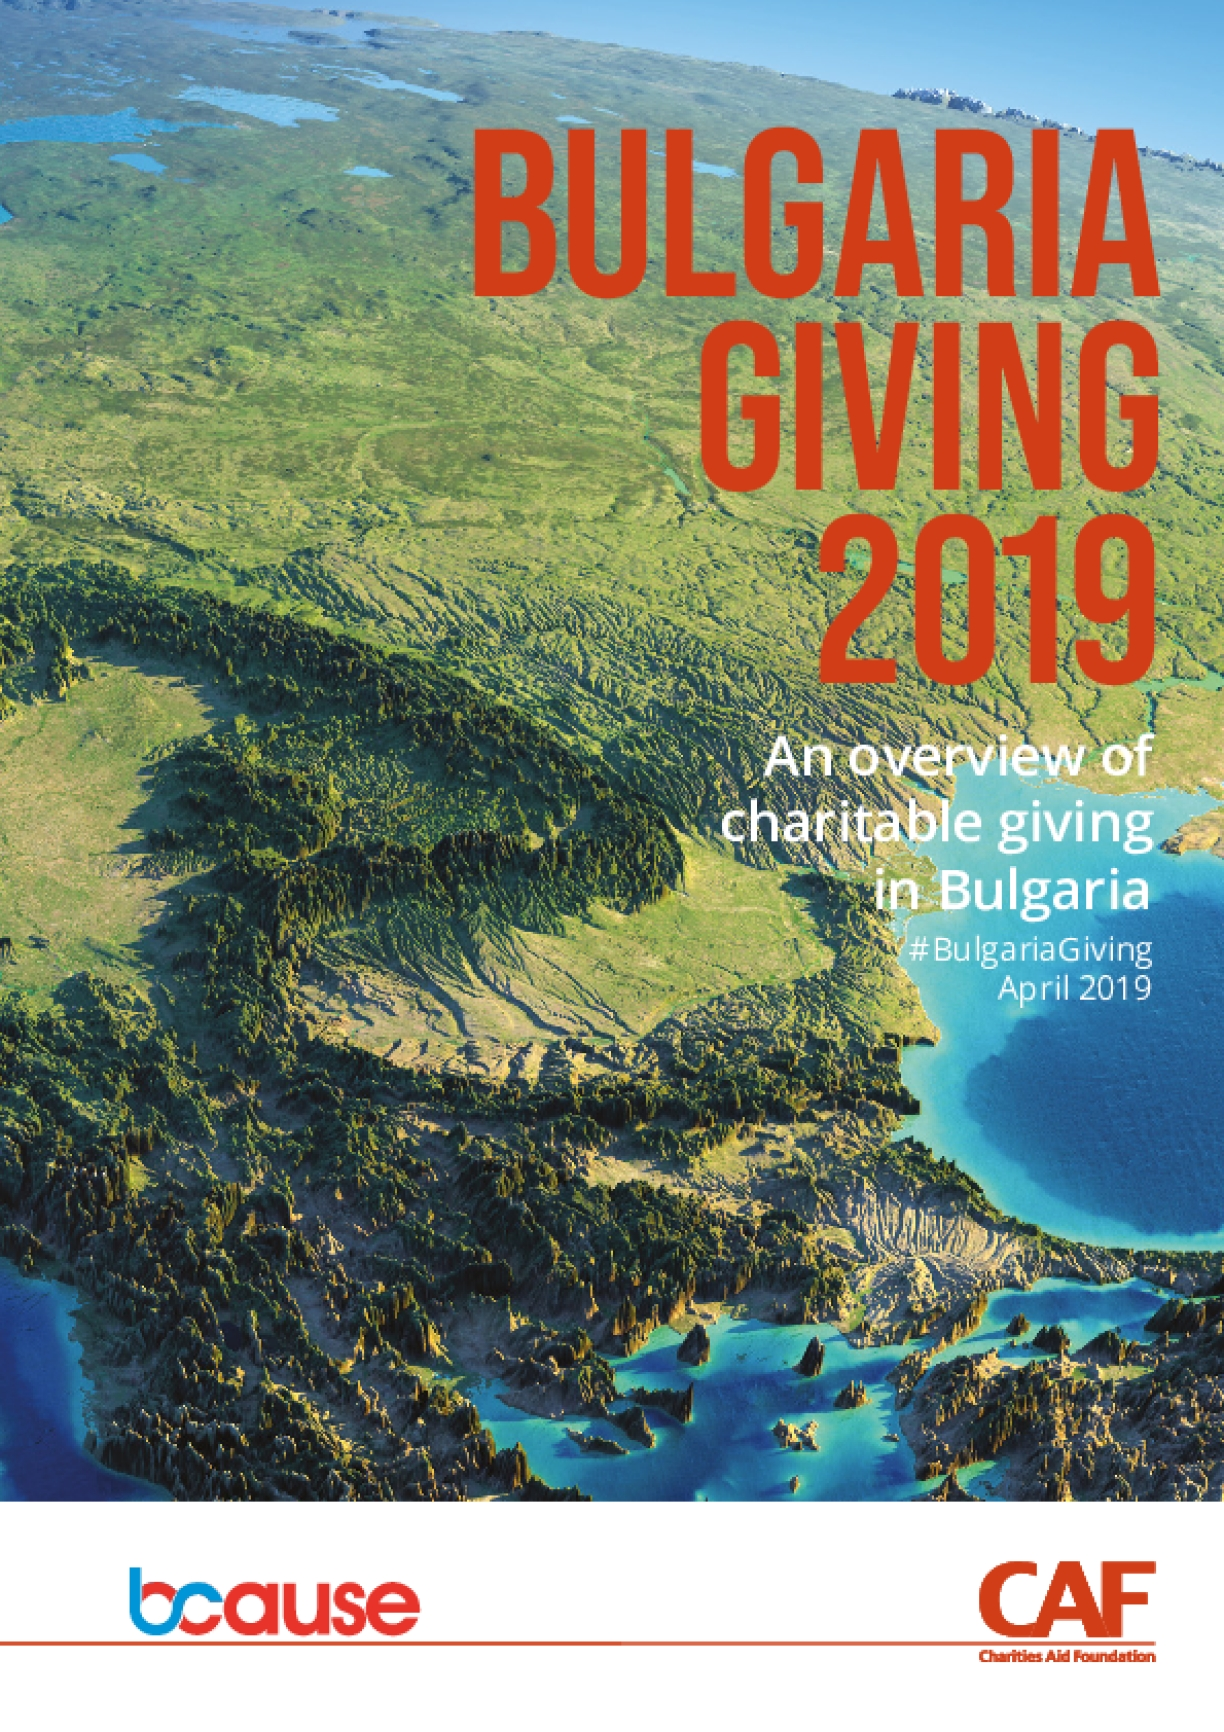 Bulgaria Giving 2019 : An Overview of Charitable Giving in Bulgaria